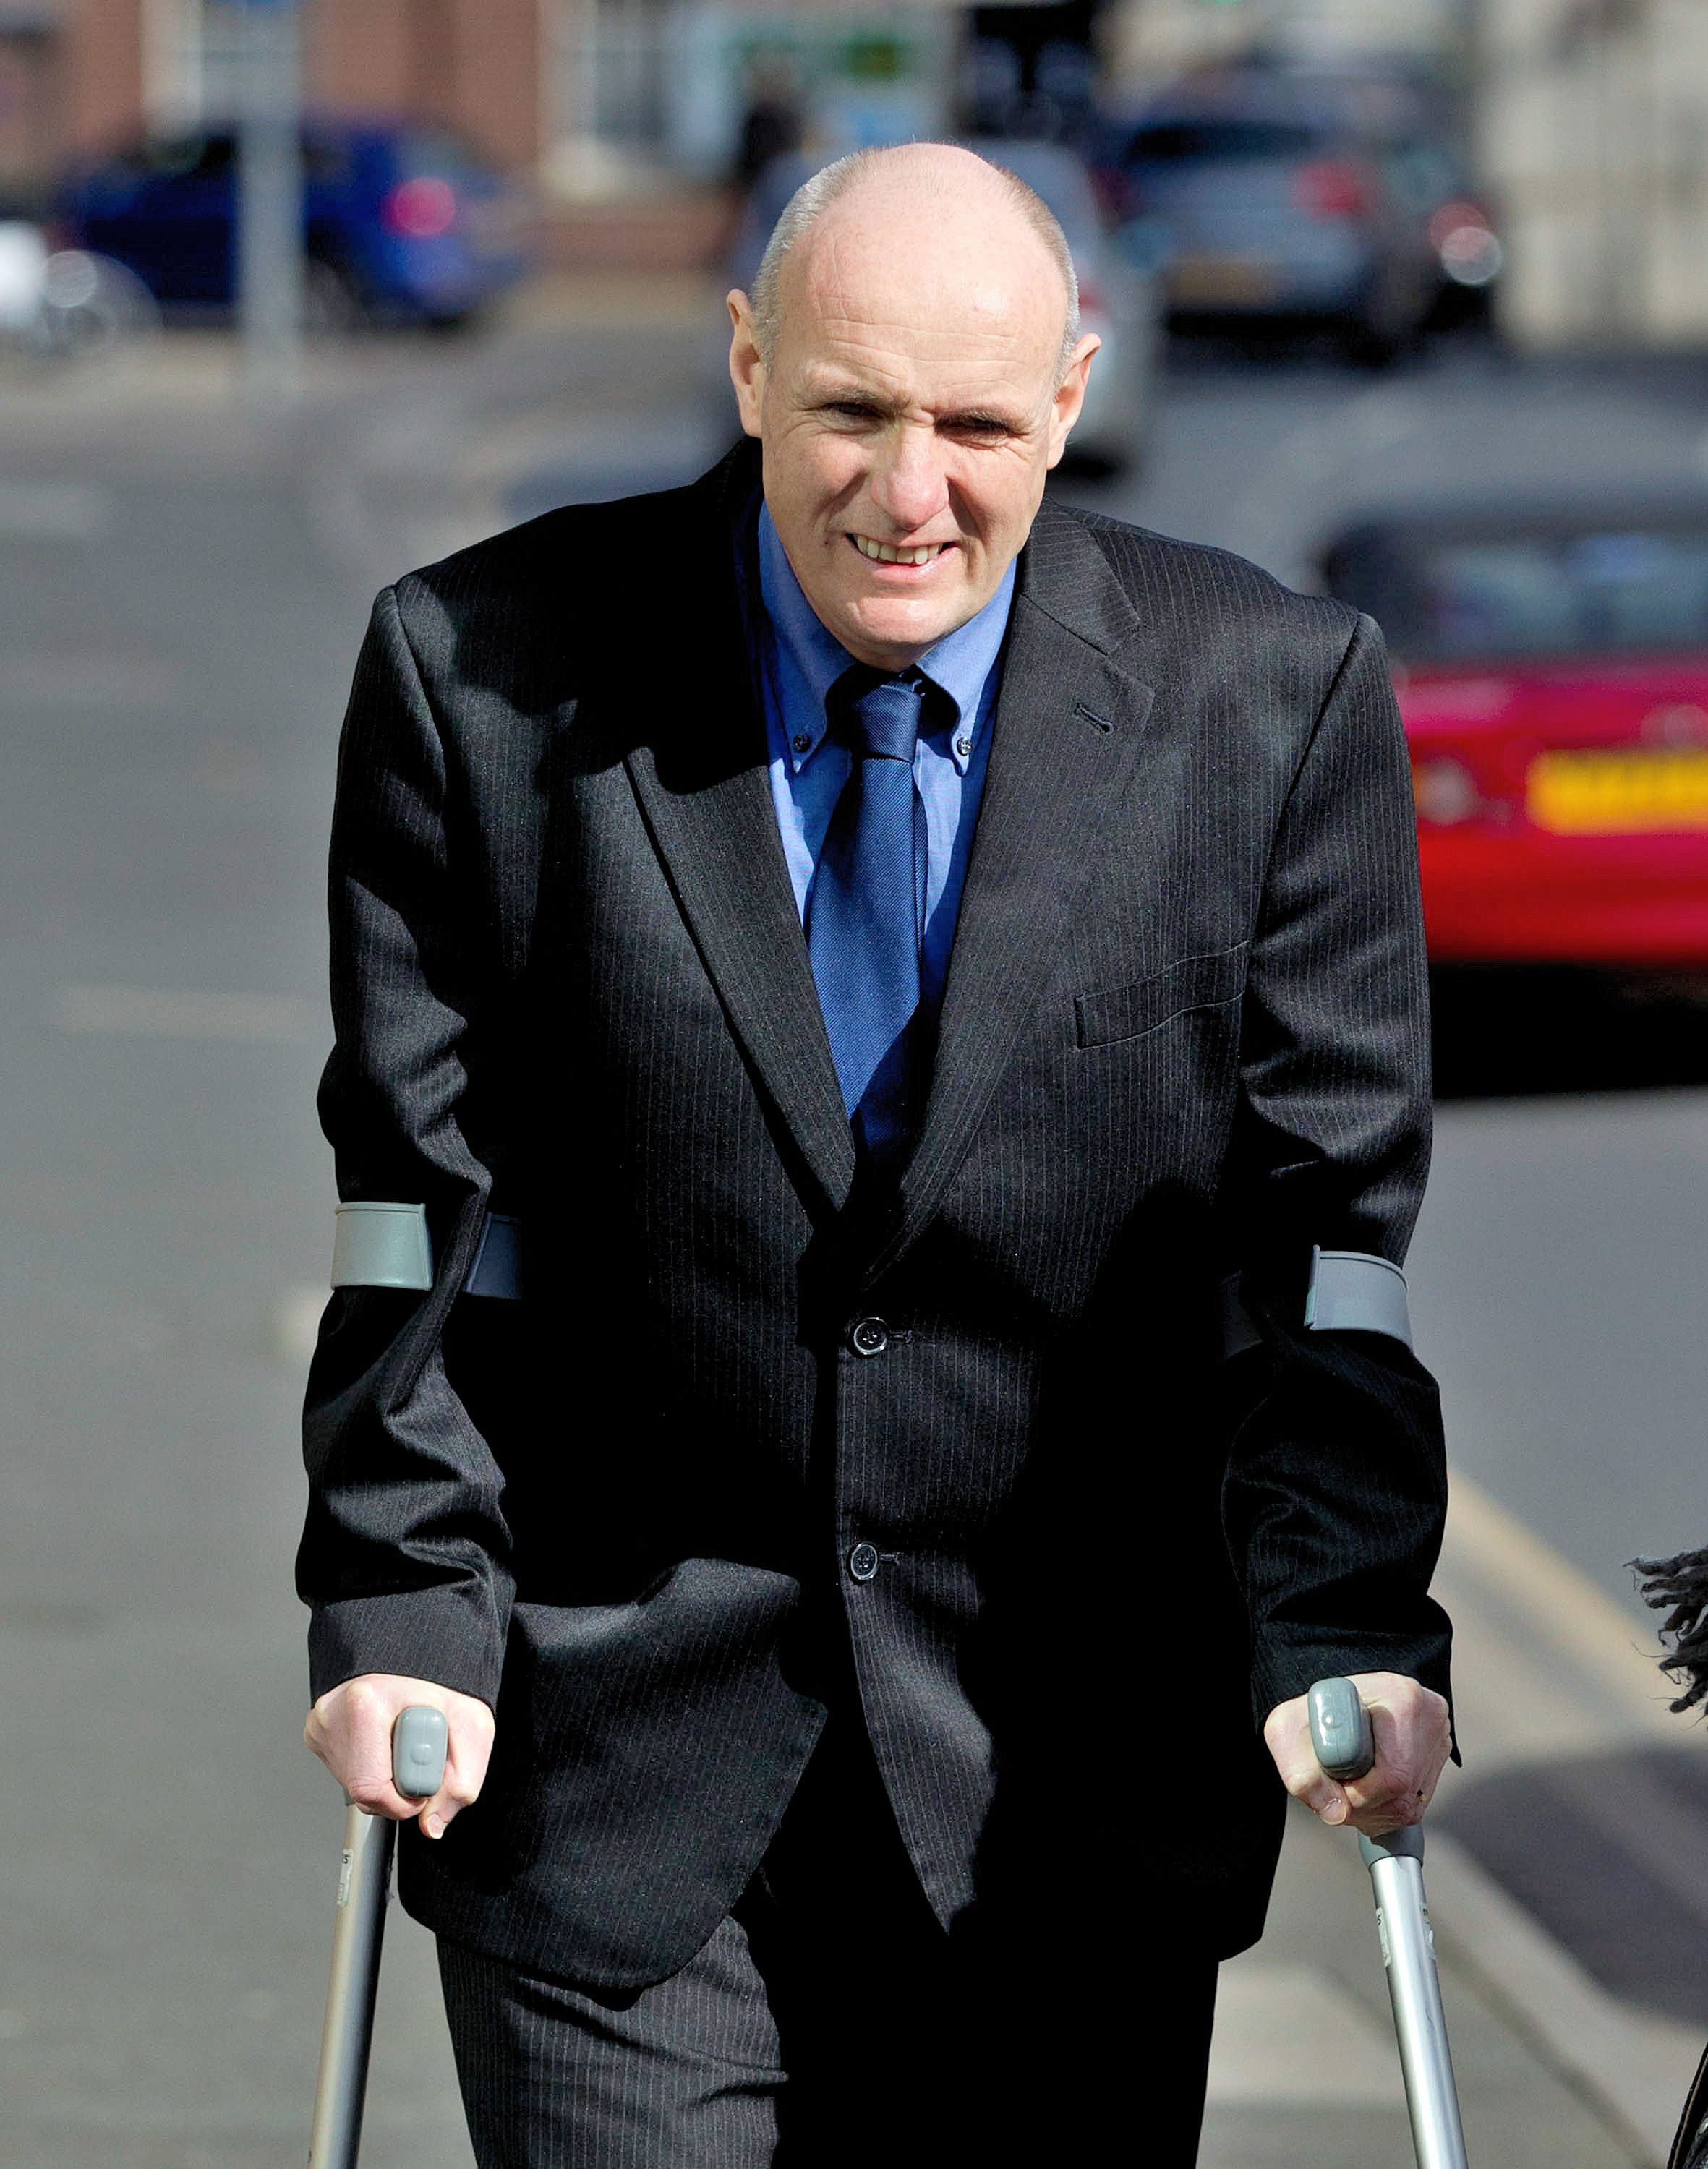 Former headteacher David Doubtfire who is charged with voyeurism, walks away from Worcester Magistrates Court.